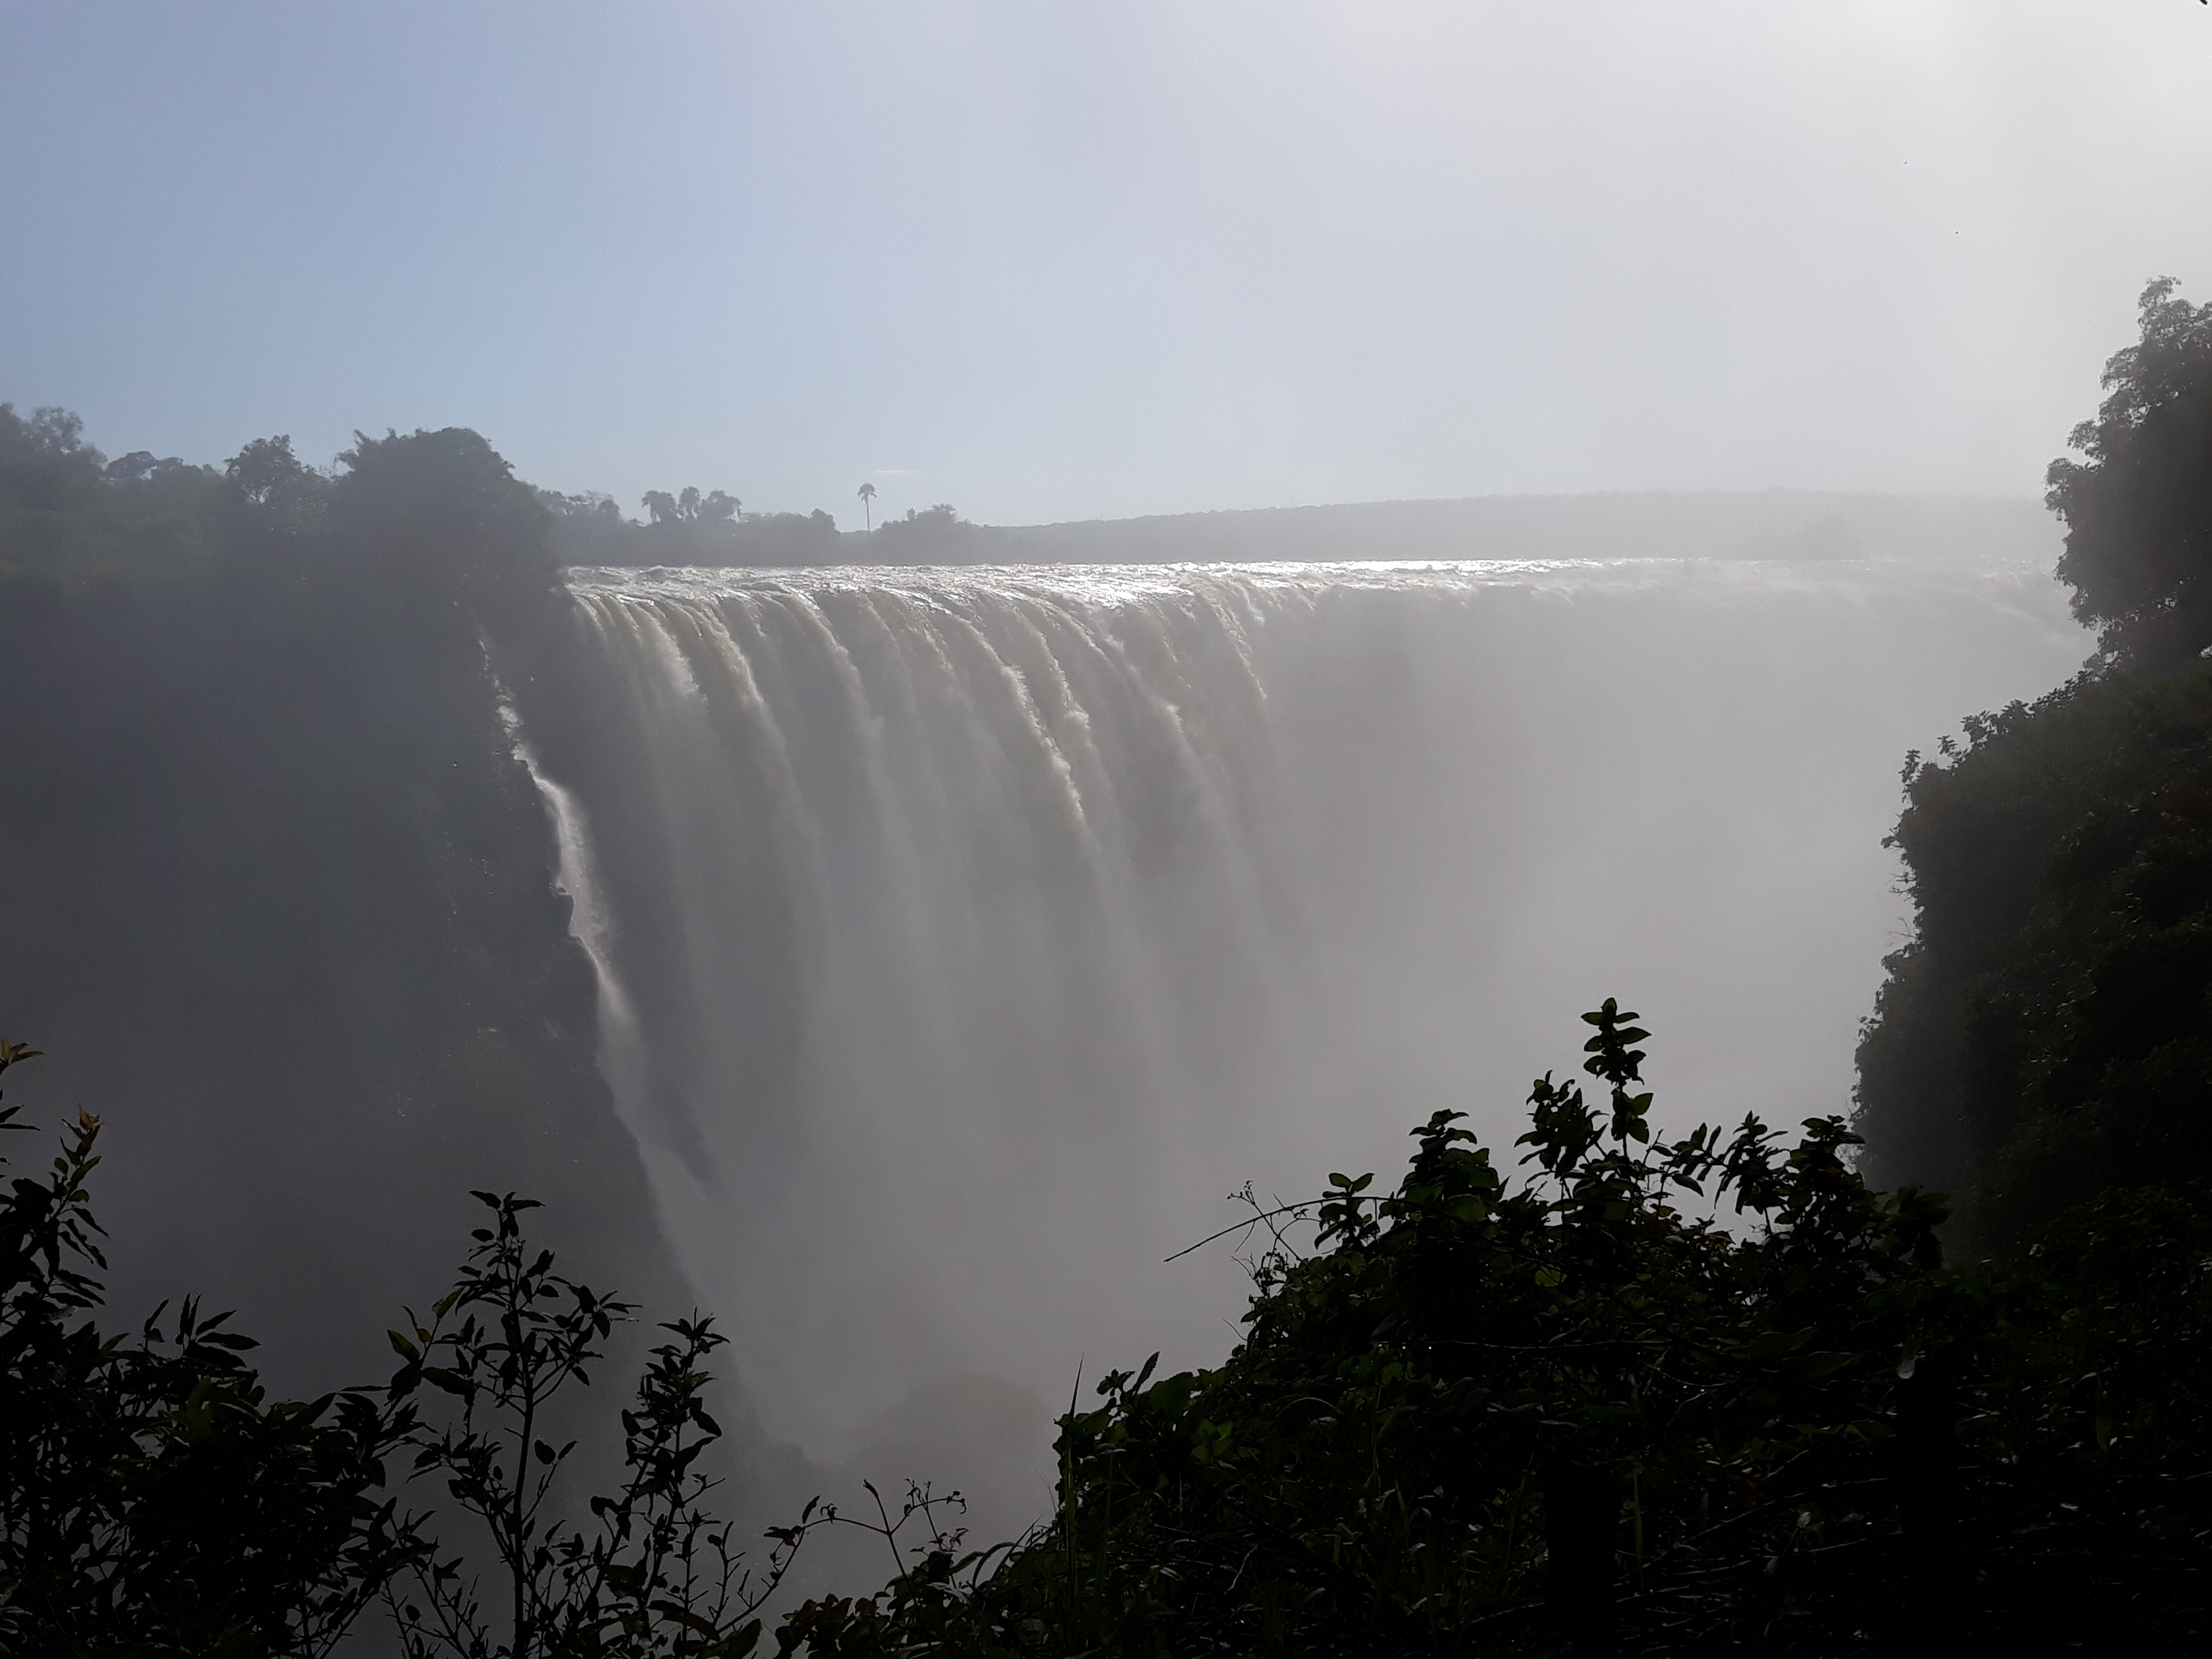 Main Falls from another angle